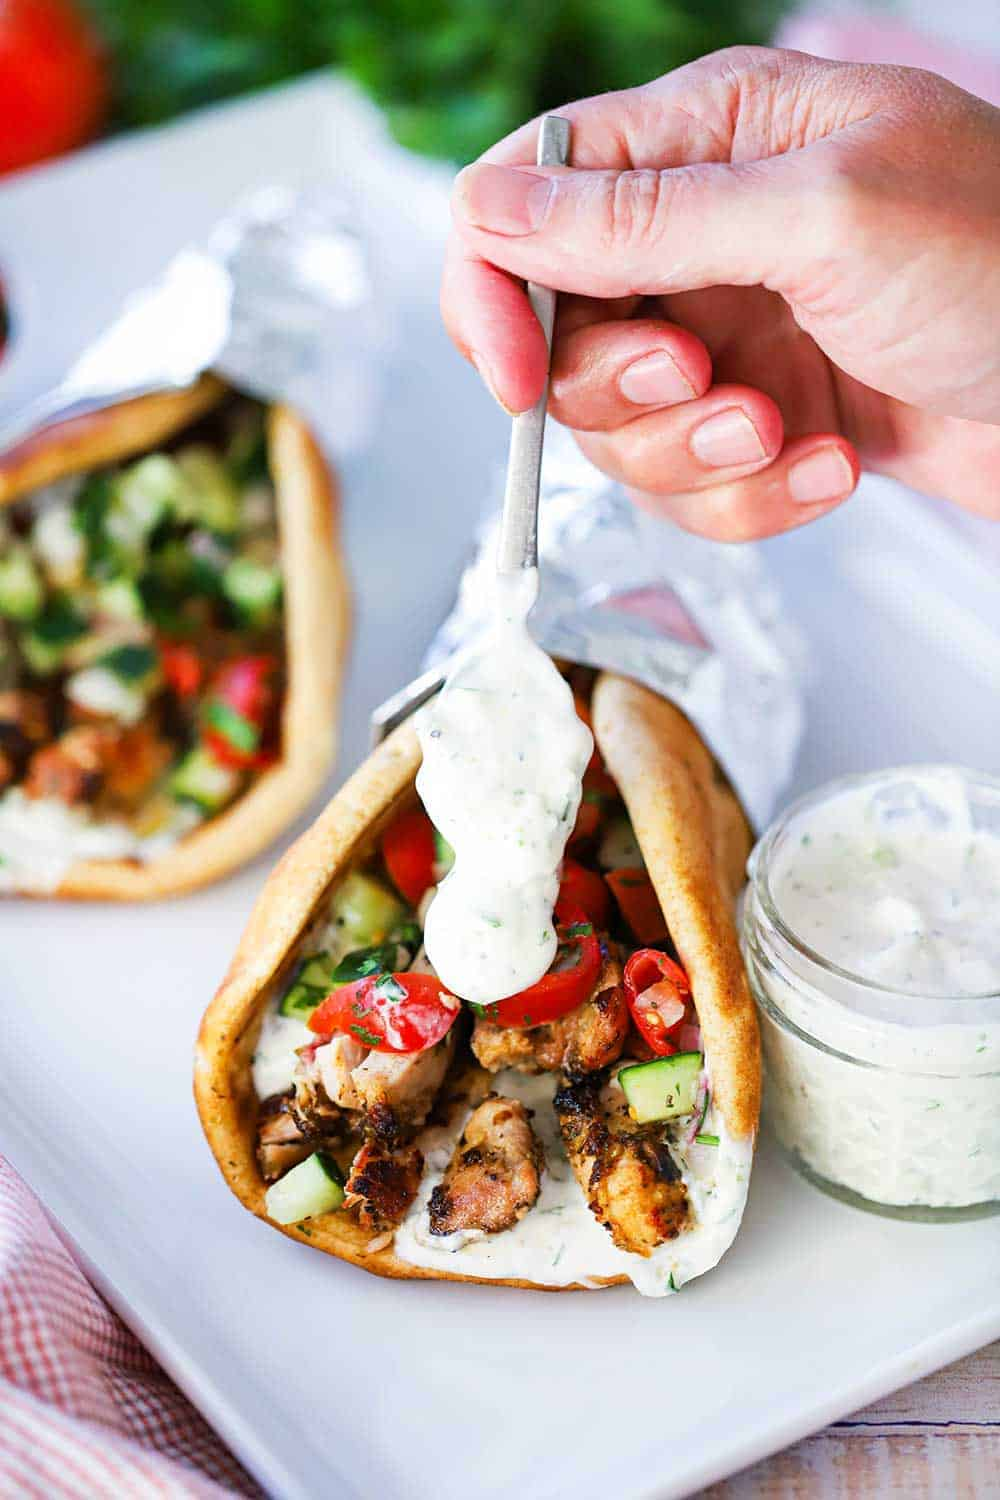 A hand using a small spoon to drizzle homemade tzatziki sauce over the end of a chicken gyro that is sitting next to a small jar of the sauce on a white platter.